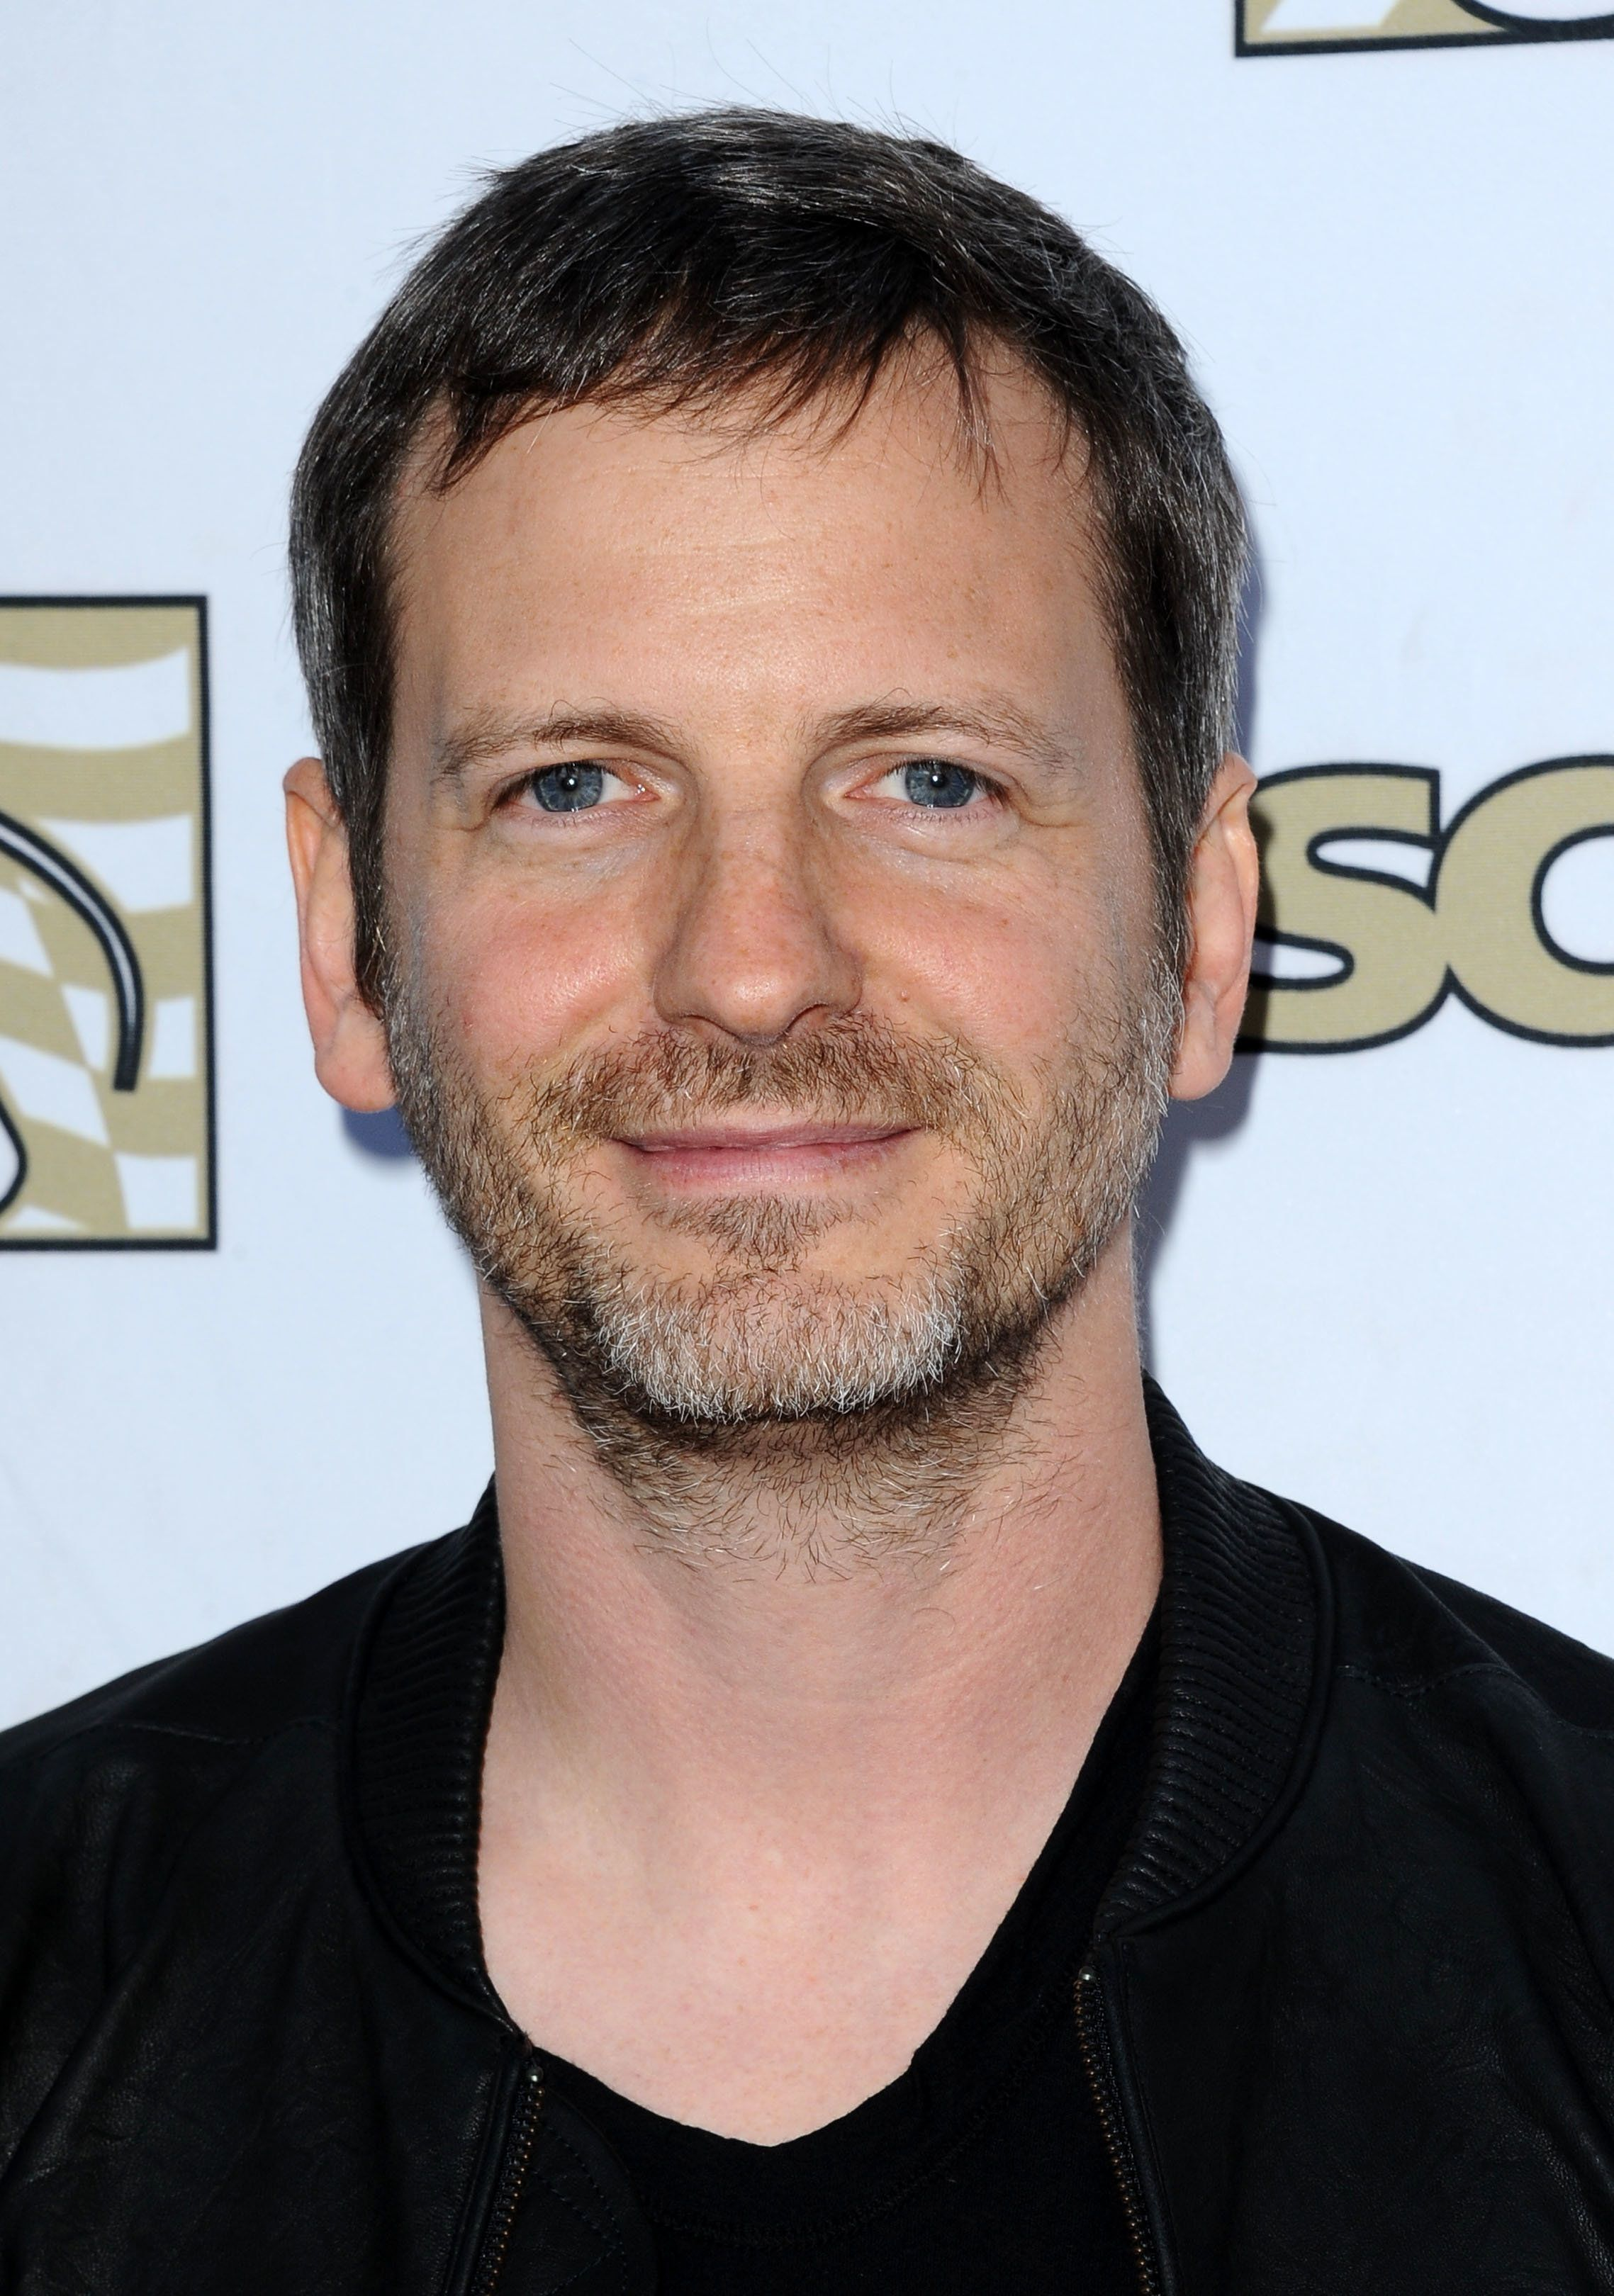 Sony Appears To Distance Itself From Dr Luke, But It May Not Be Good News For